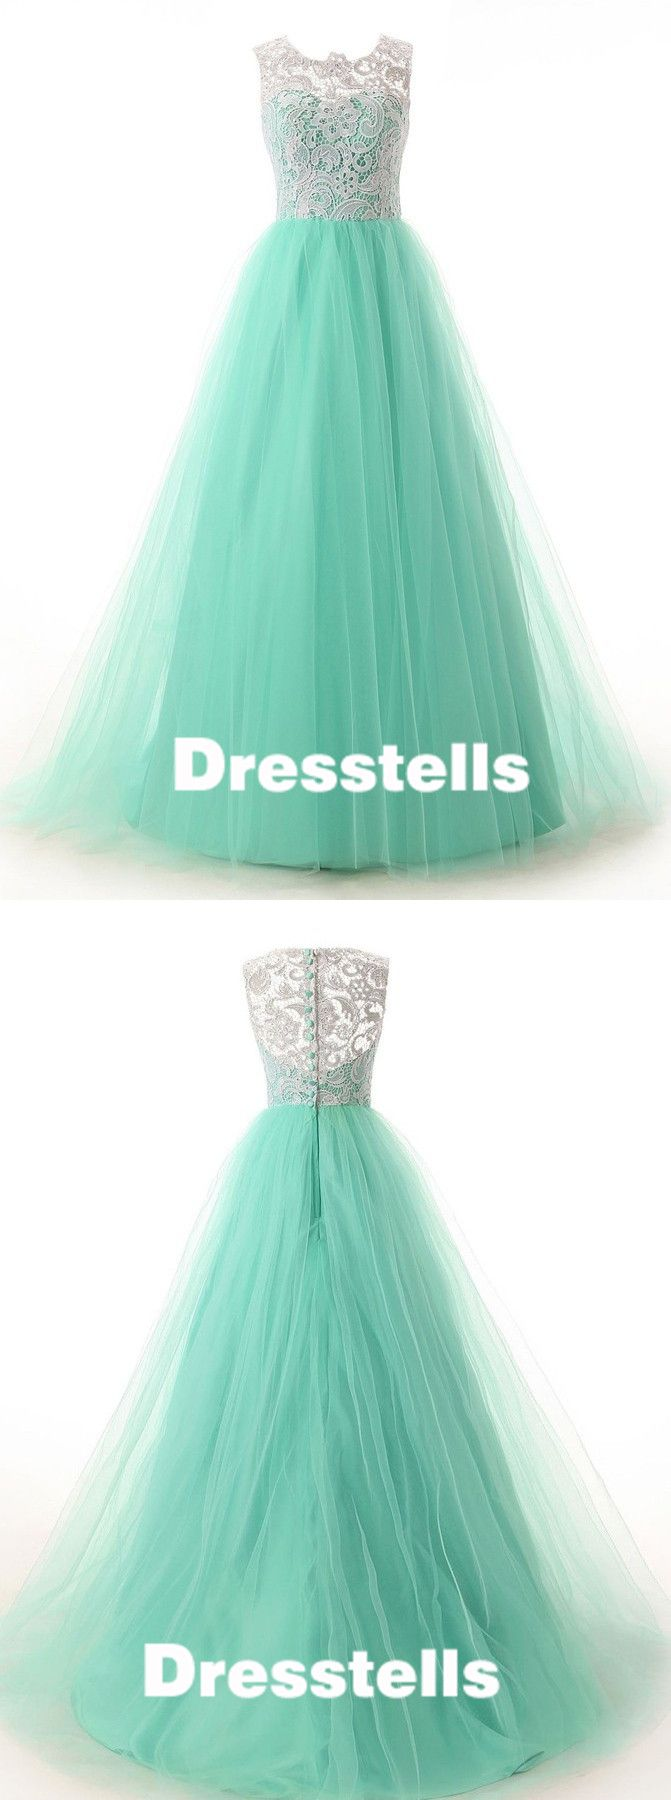 2016 long mint green tulle prom dress with white lace, ball gown, cheap prom dress